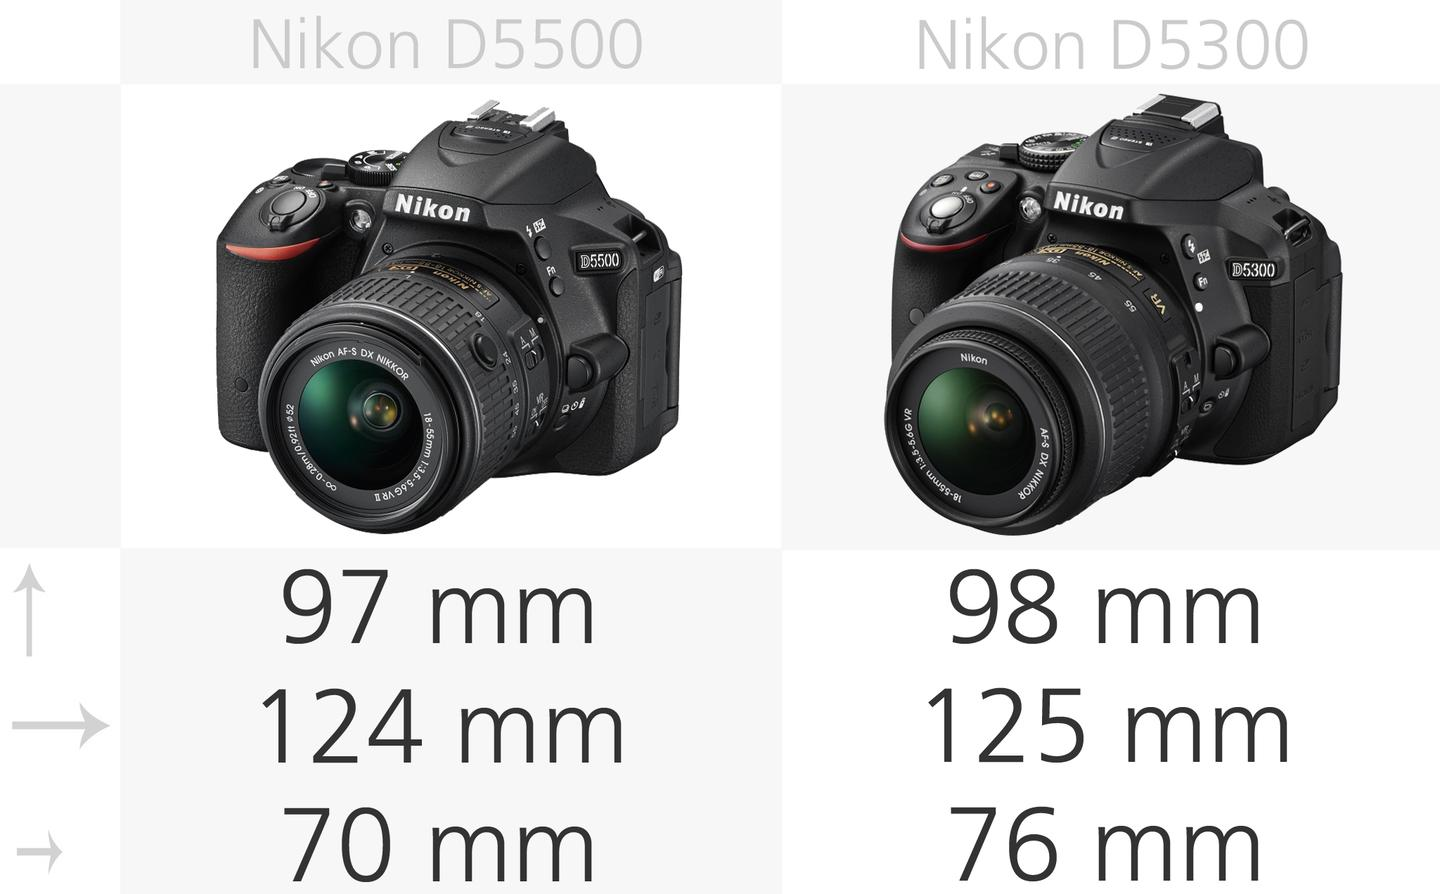 Nikon D5500 vs. Nikon D5300 size comparison